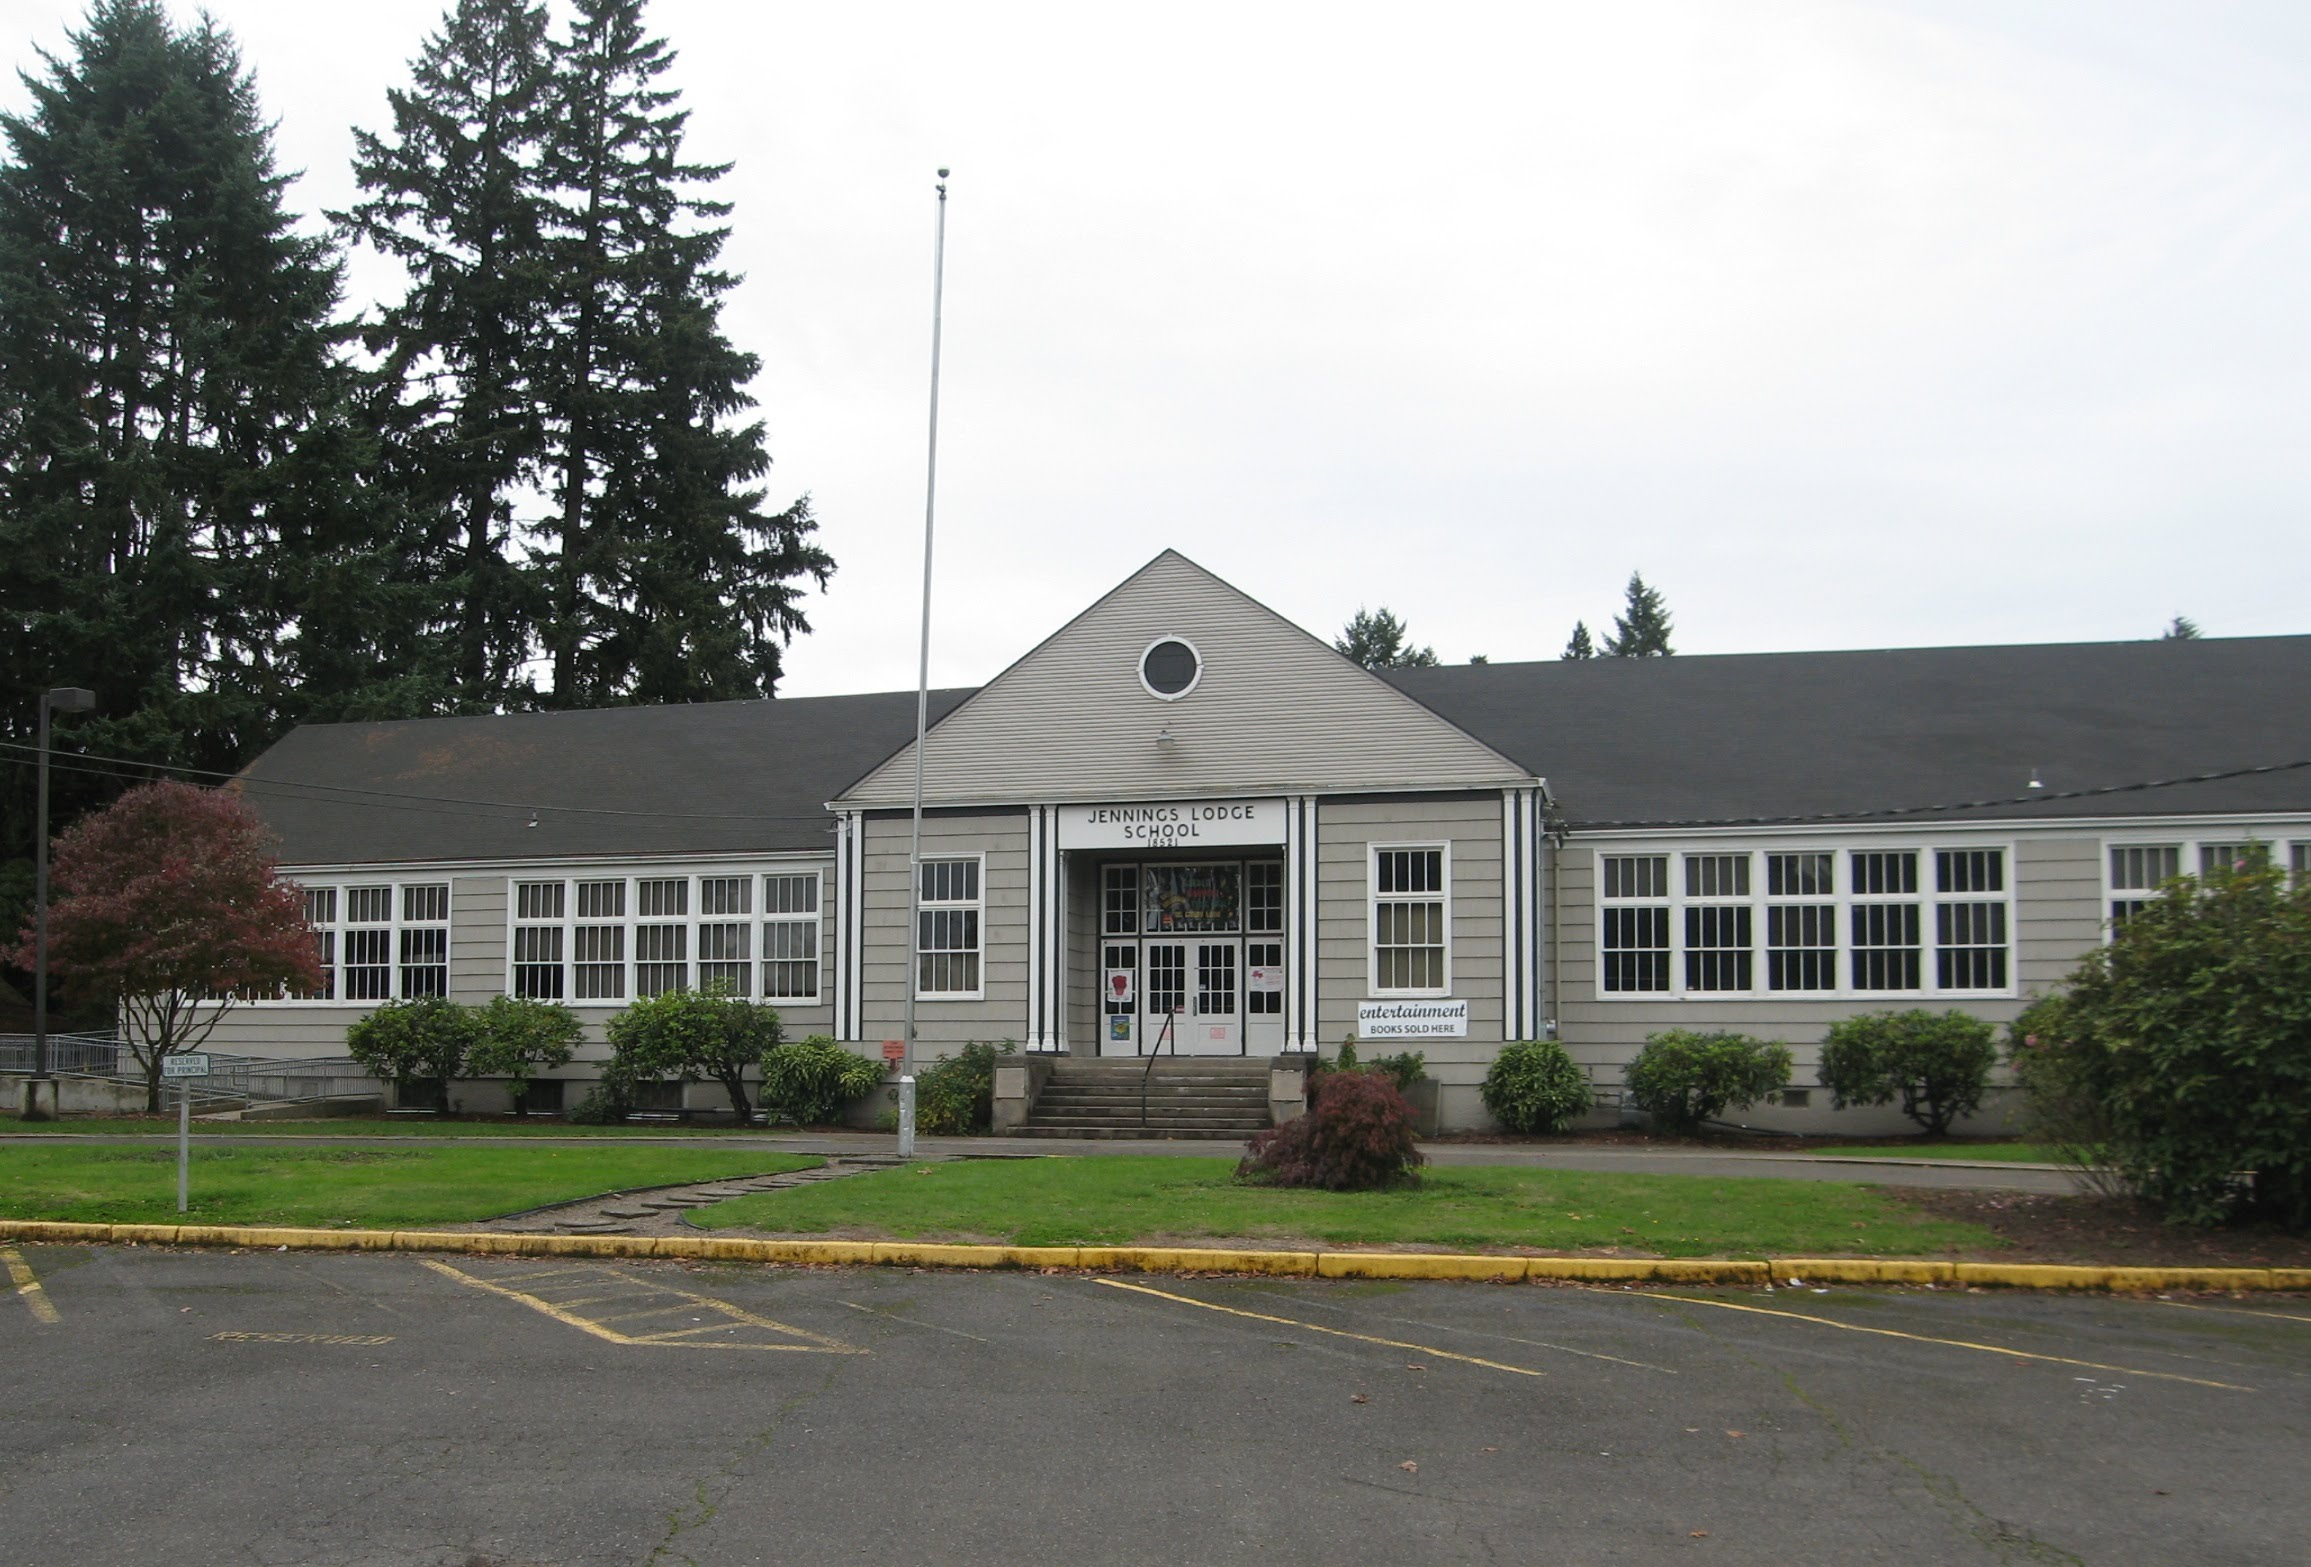 Jennings Lodge Elementary School